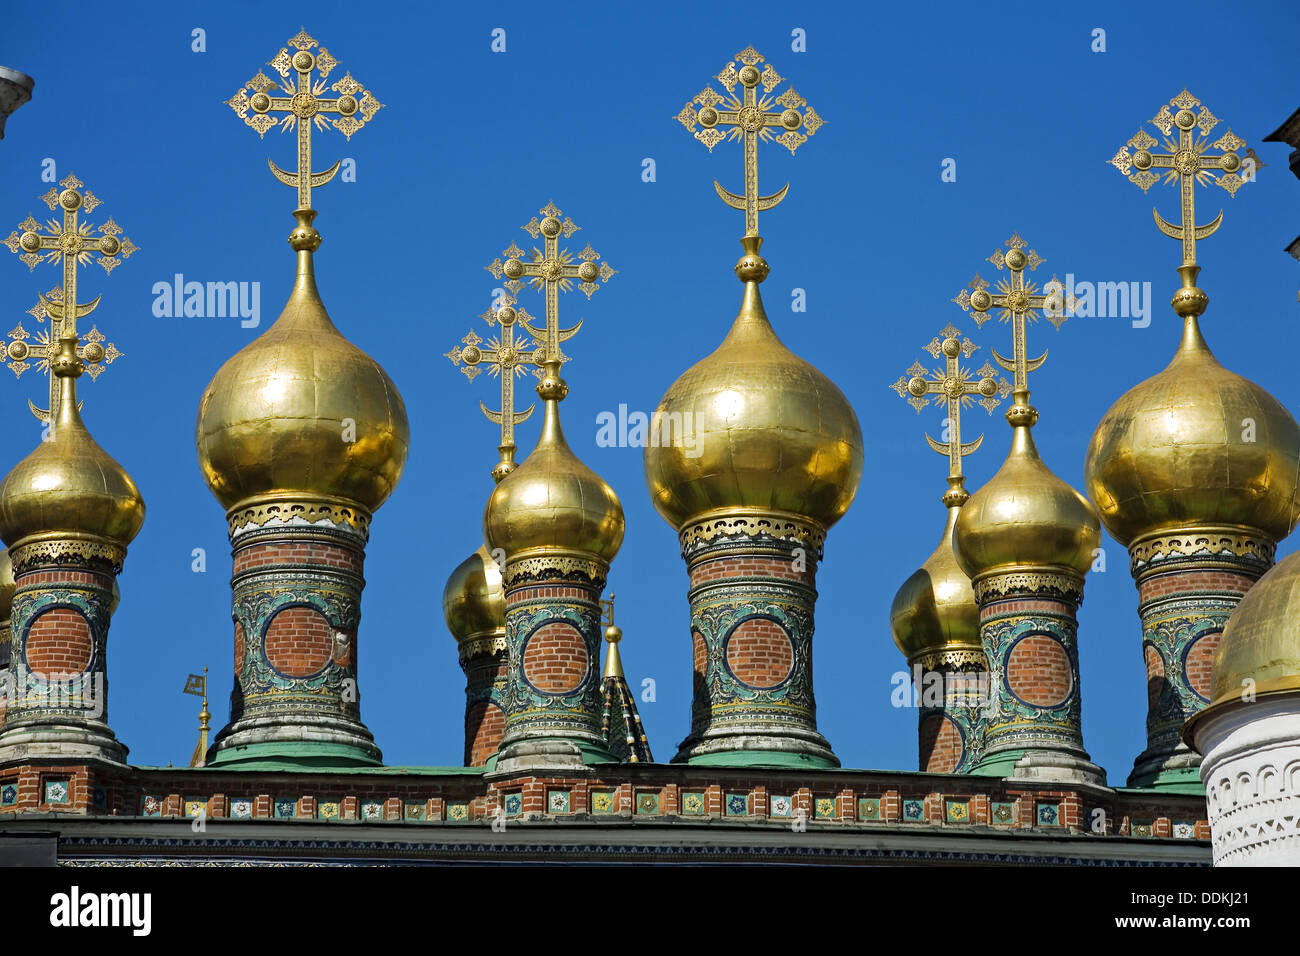 Cupolas of the Terem Churches, Kremlin, Moscow, Russia - Stock Image